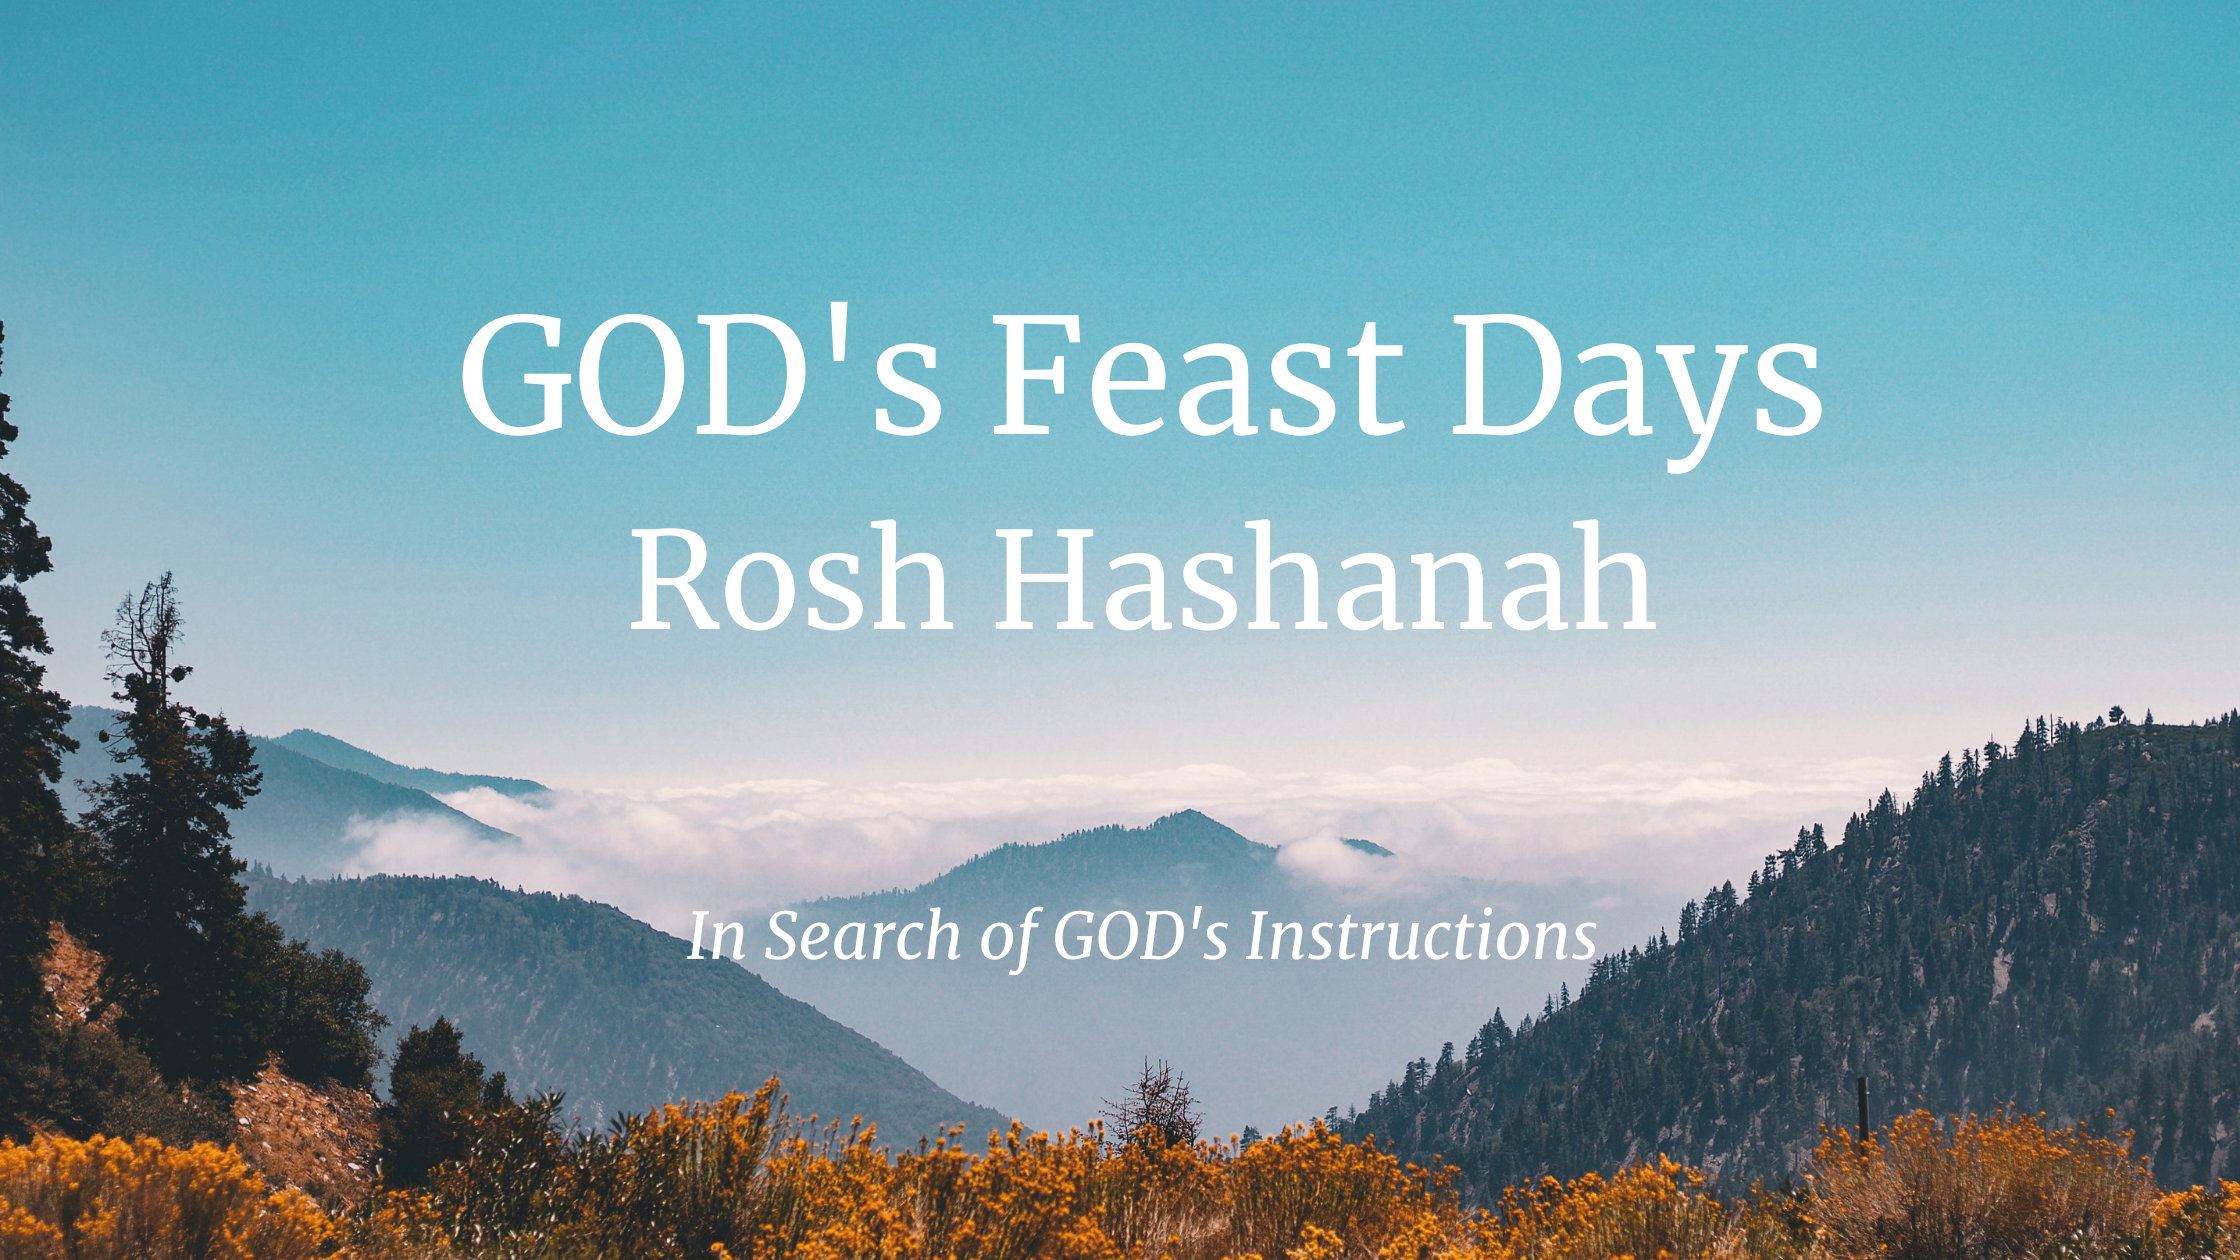 GOD's Feast Days – Rosh Hashanah